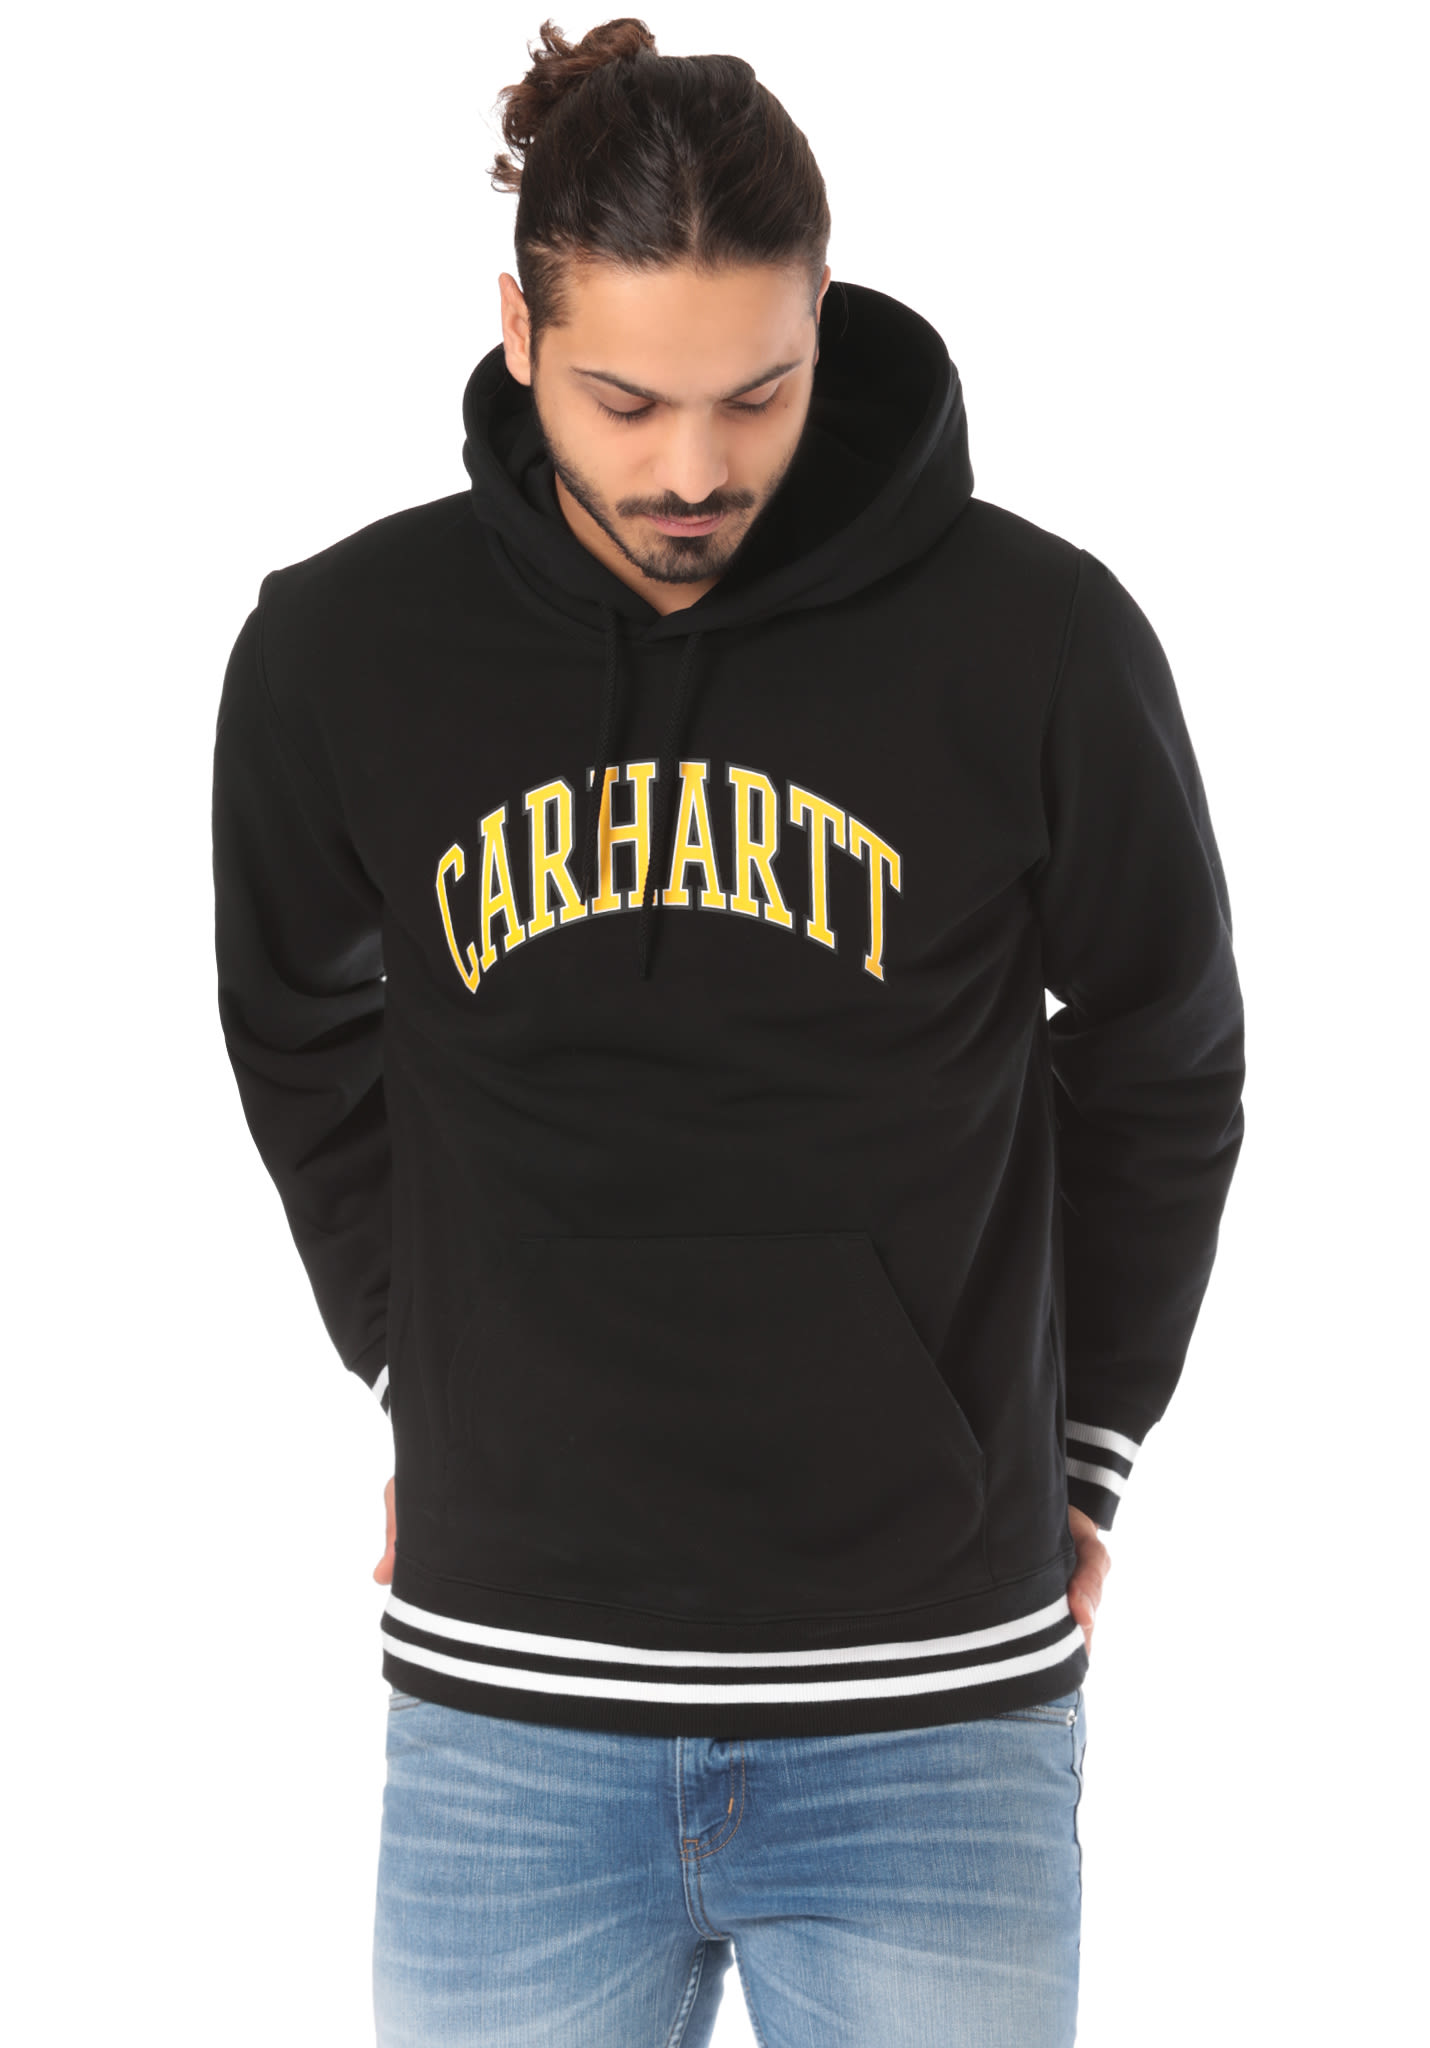 d14c8709 carhartt WIP Knowledge - Hooded Sweatshirt for Men - Black - Planet ...  carhartt